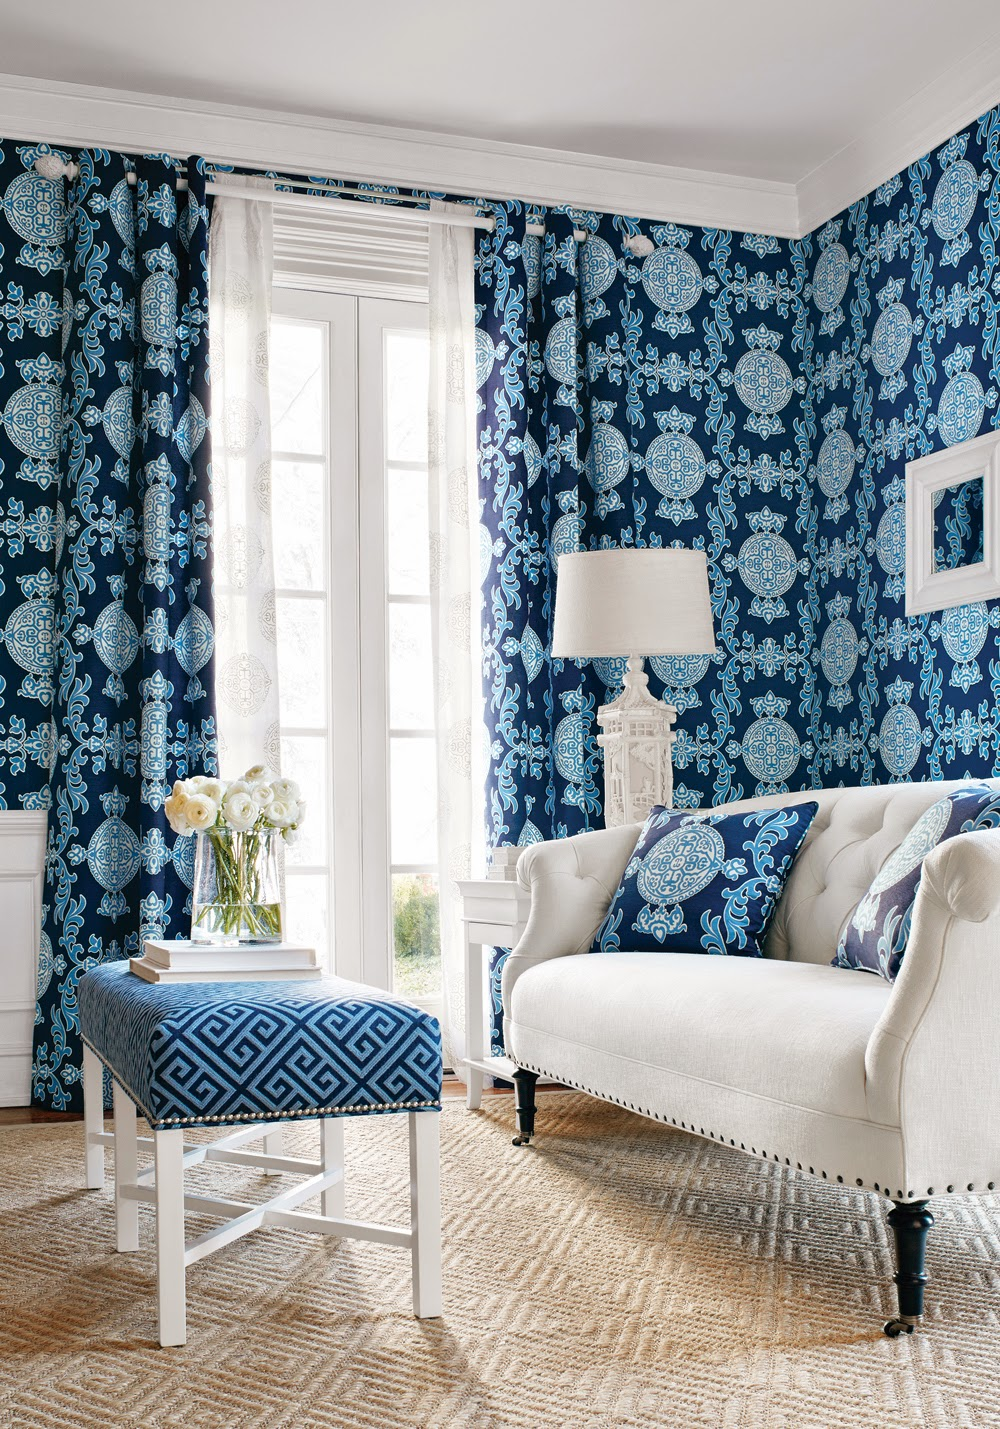 http://www.thibautdesign.com/collection/high_res.php?patternID=1522&productID=10694